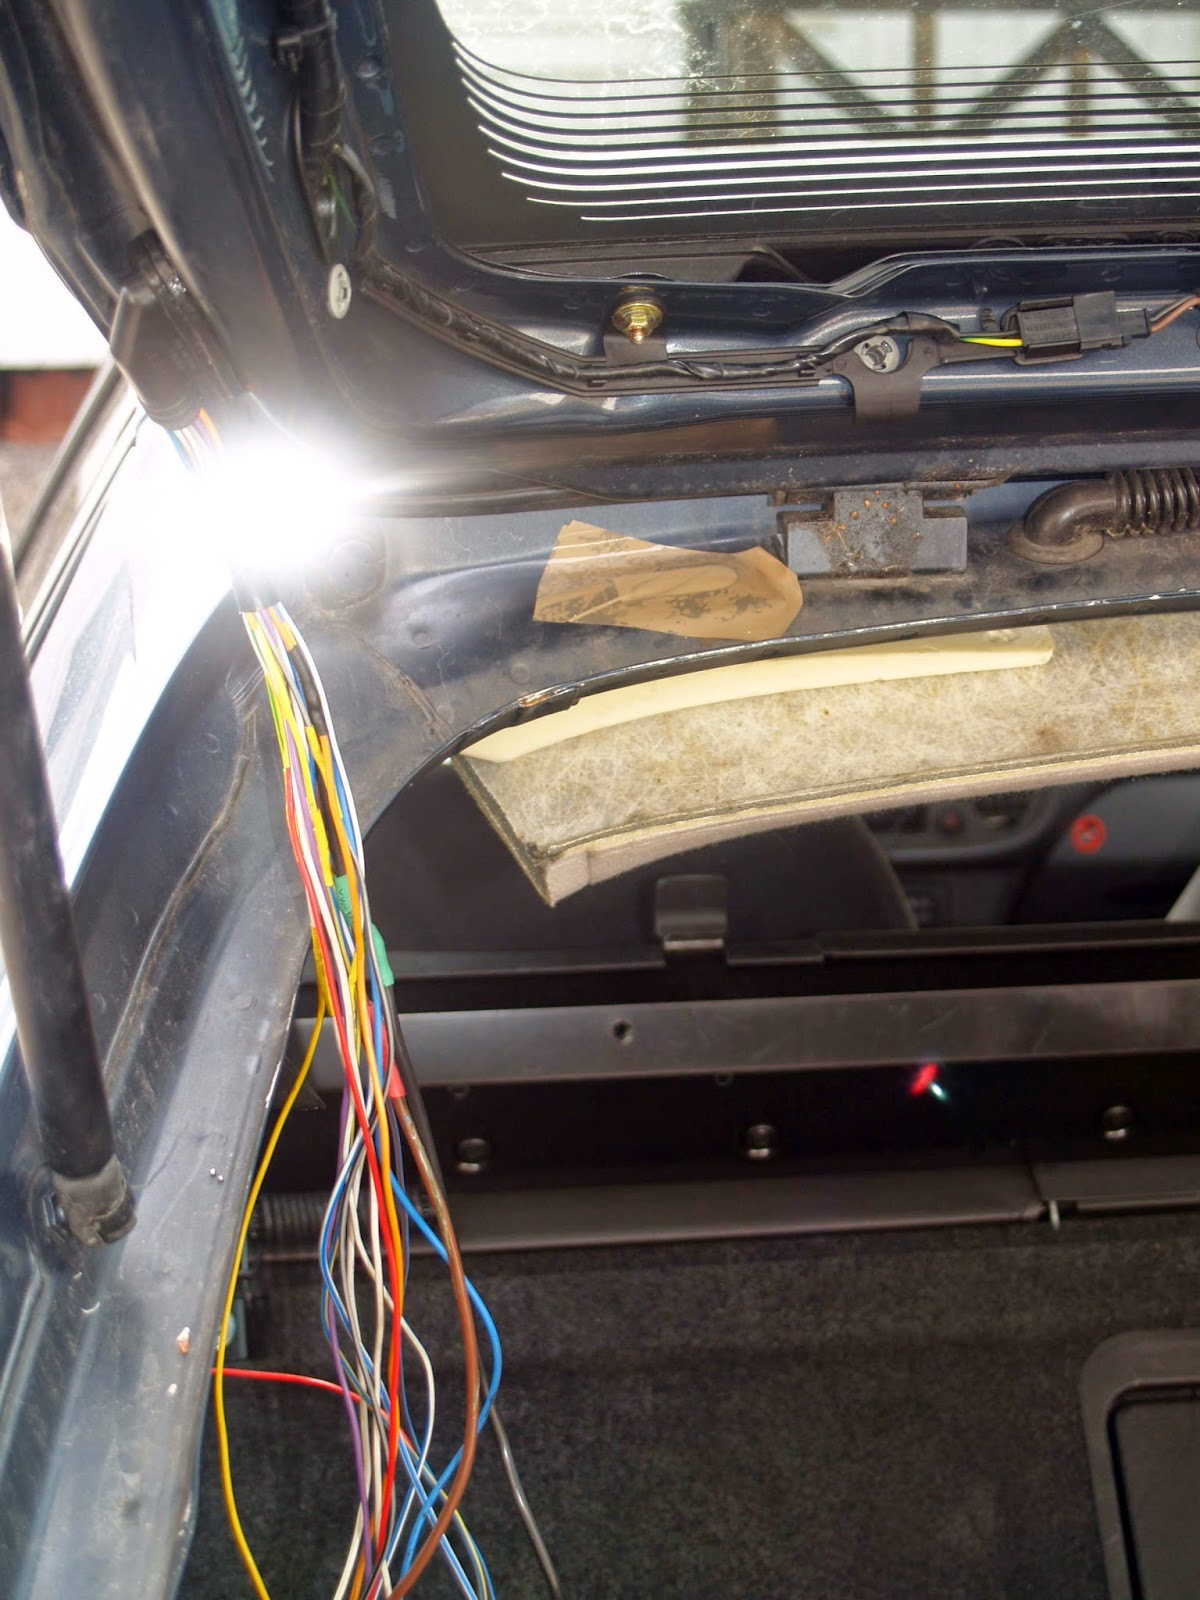 Automotive Wiring Harness Melted Diagrams Suppliers Jb Service Saab 9 3 Se 2 0t 1999 Fuse 29 Keep Blowing Diagram Wire Manufacturers Usa